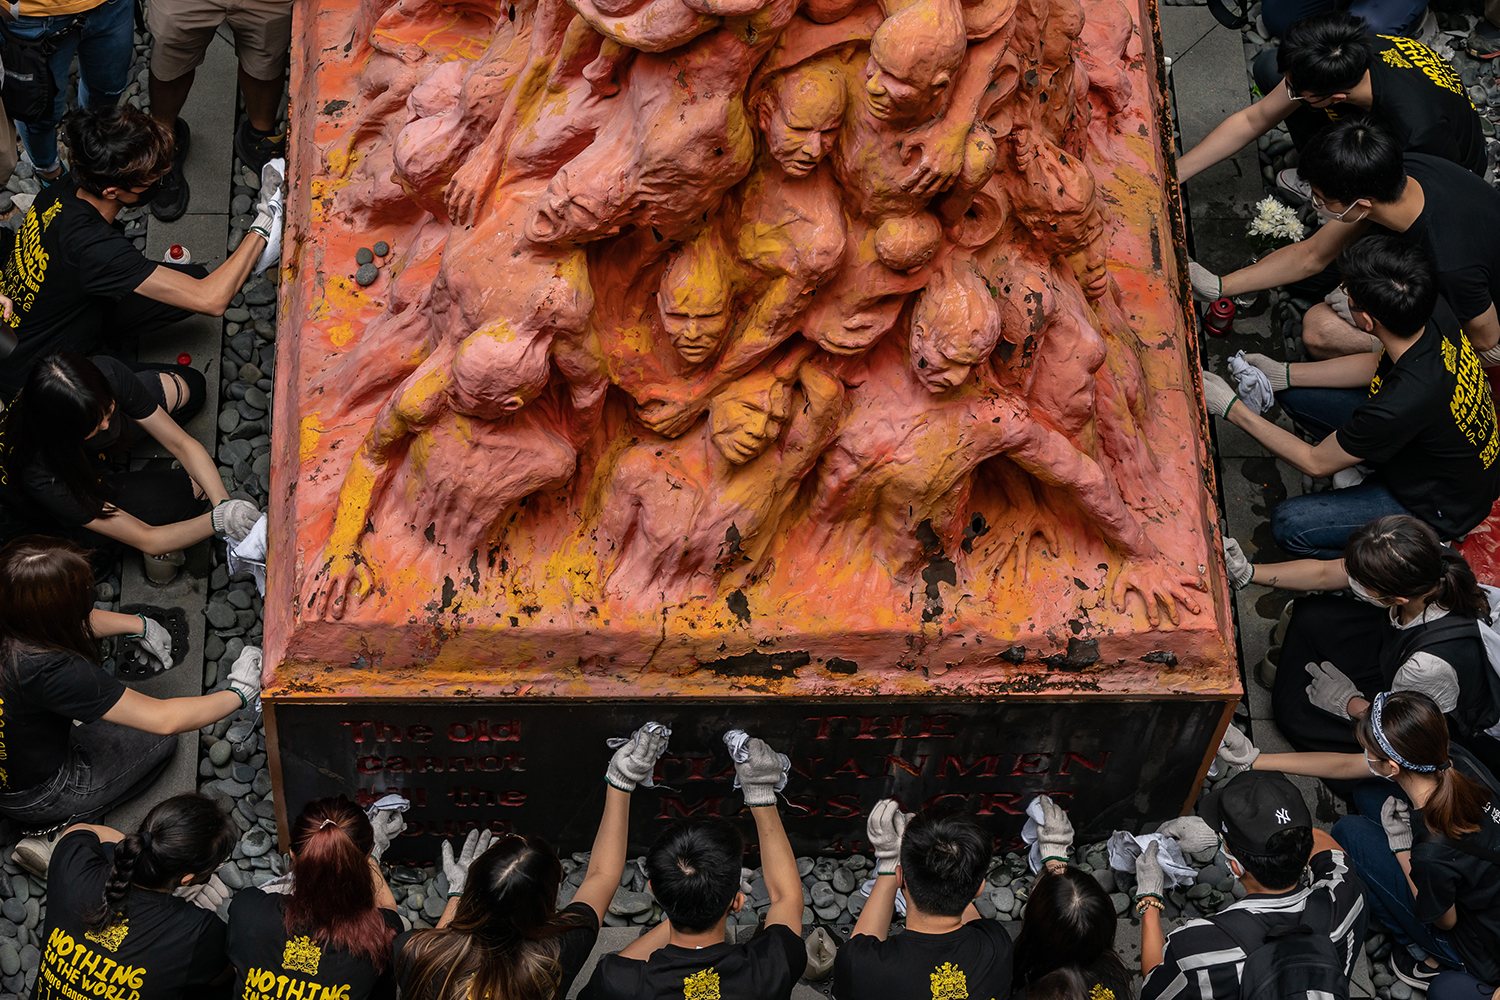 University students clean the Pillar of Shame sculpture in Hong Kong